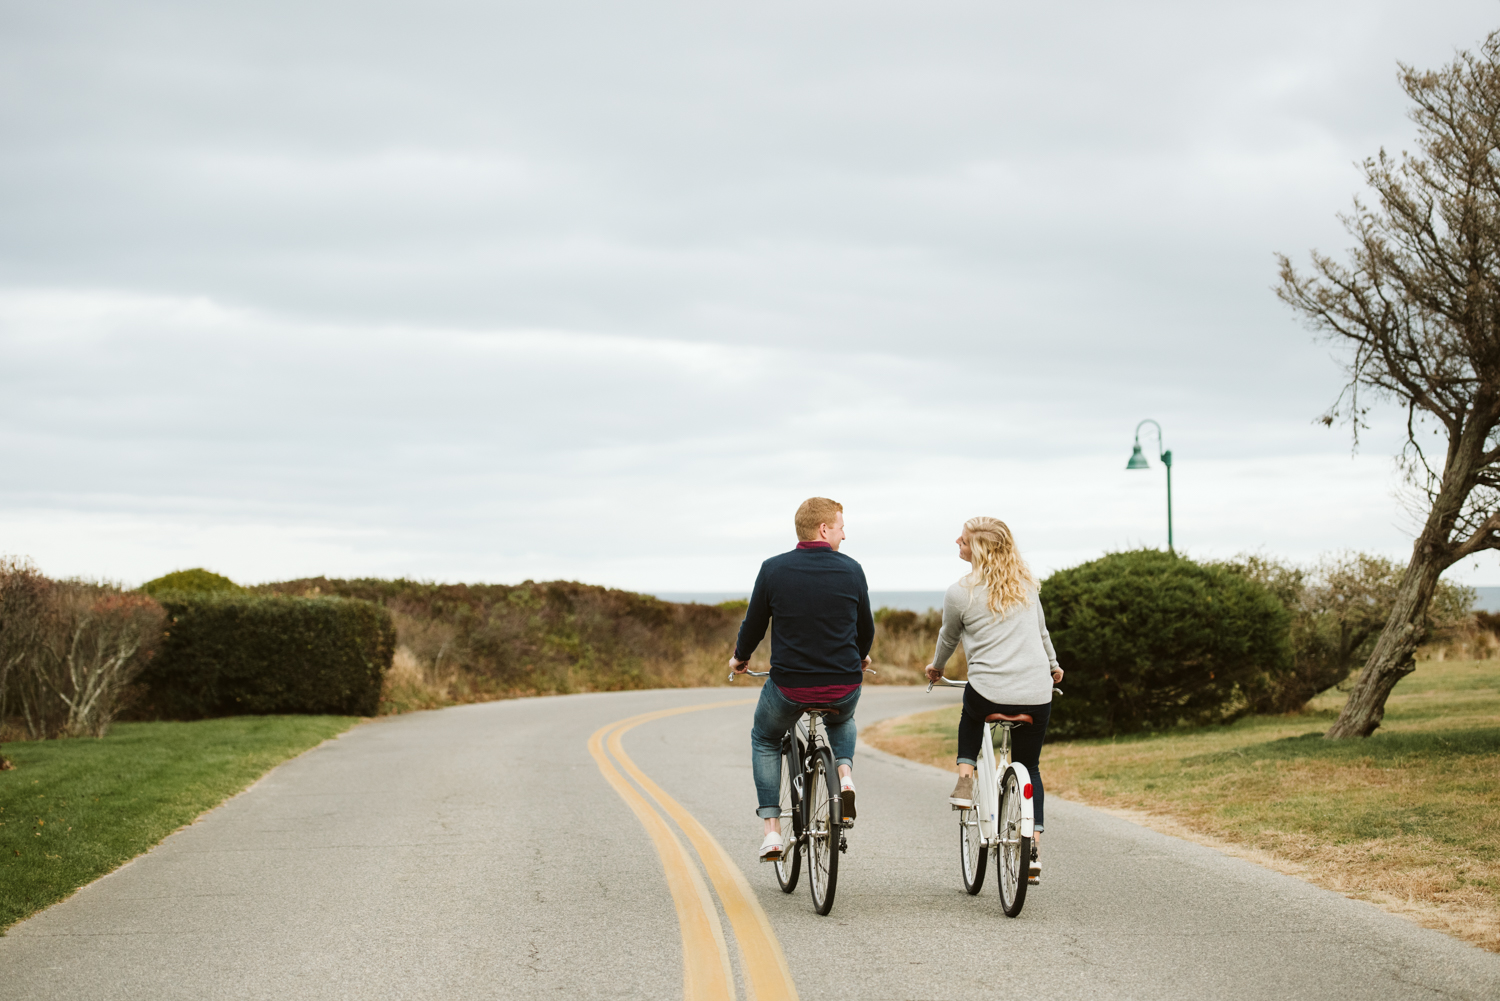 engagement_session_marthas_vineyard_DSC_1524.jpg